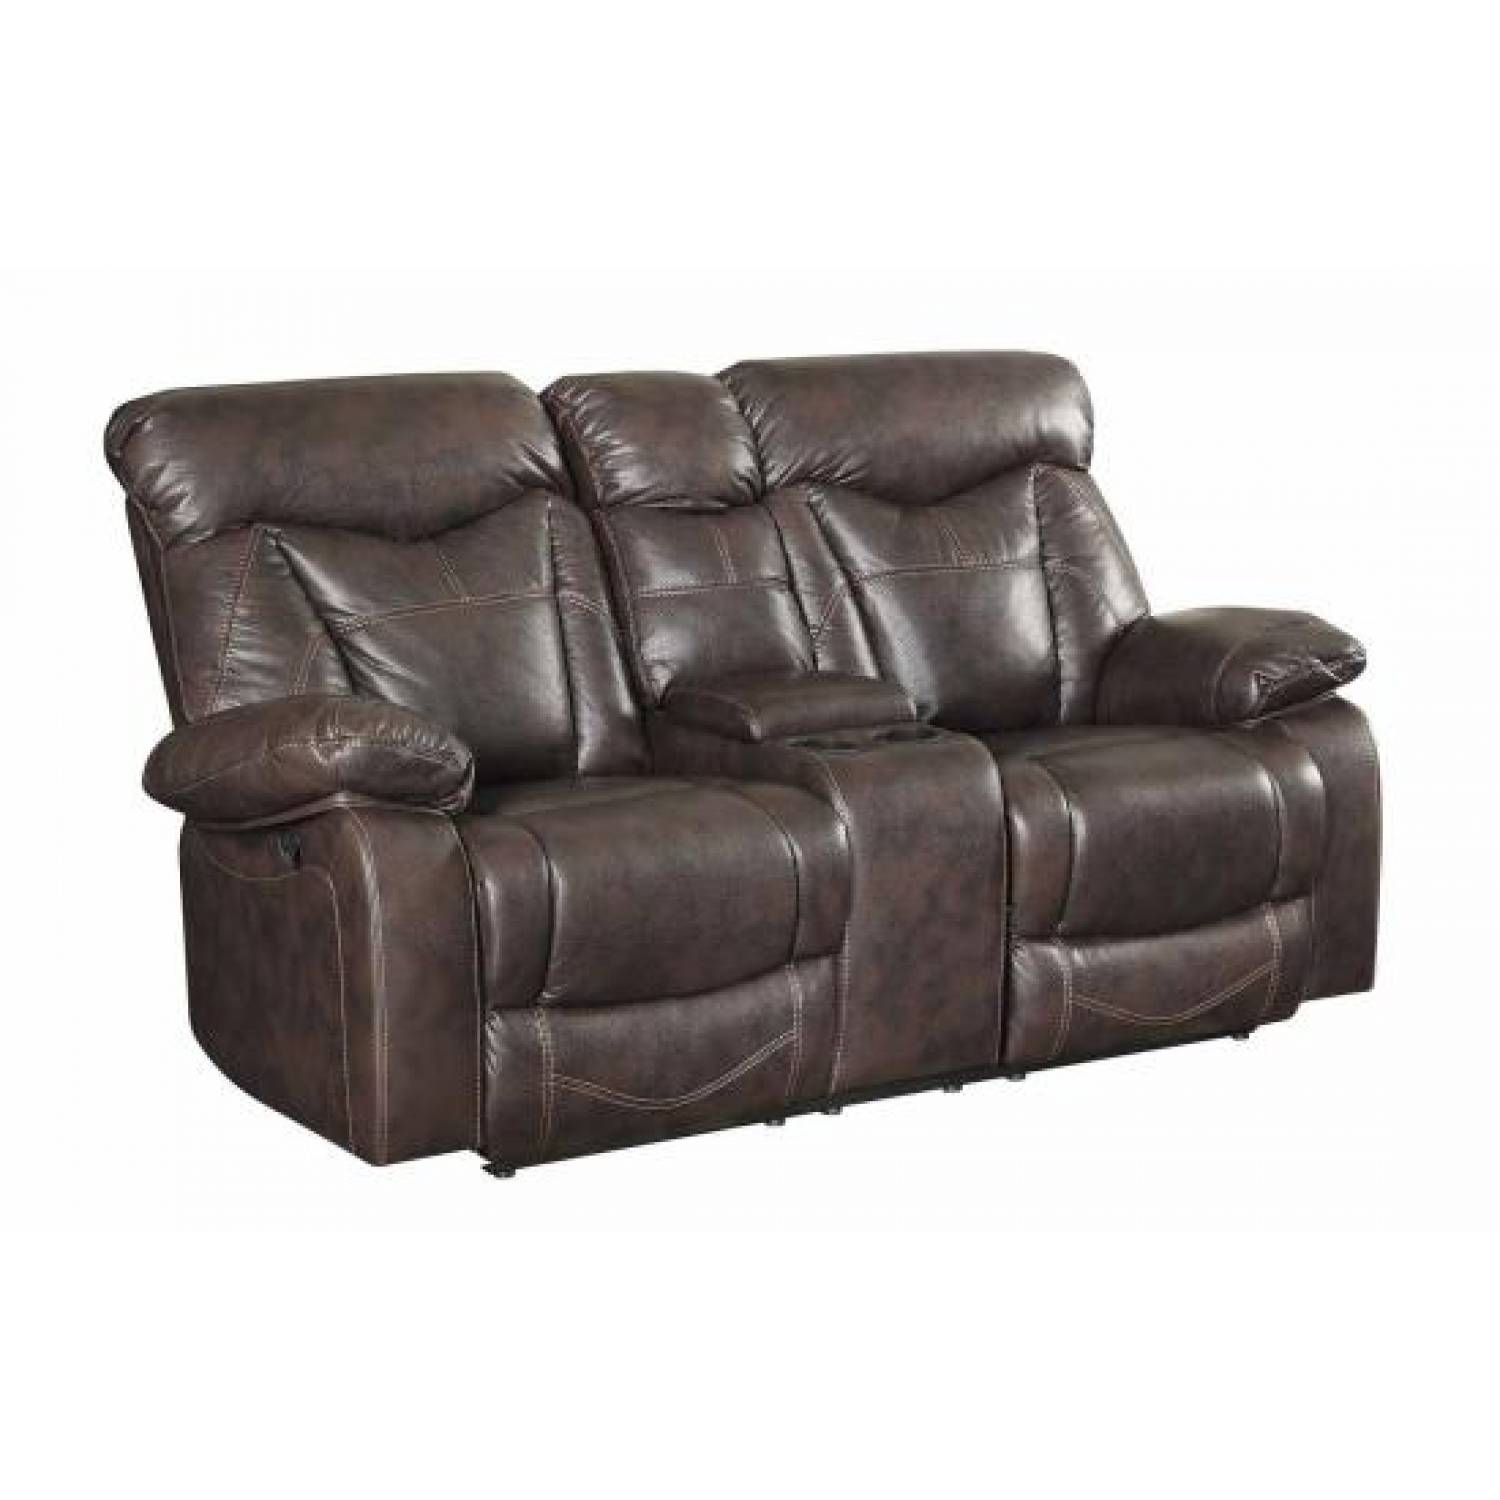 Zimmerman Power Reclining Love Seat With Cup Holders: loveseat with cup holders